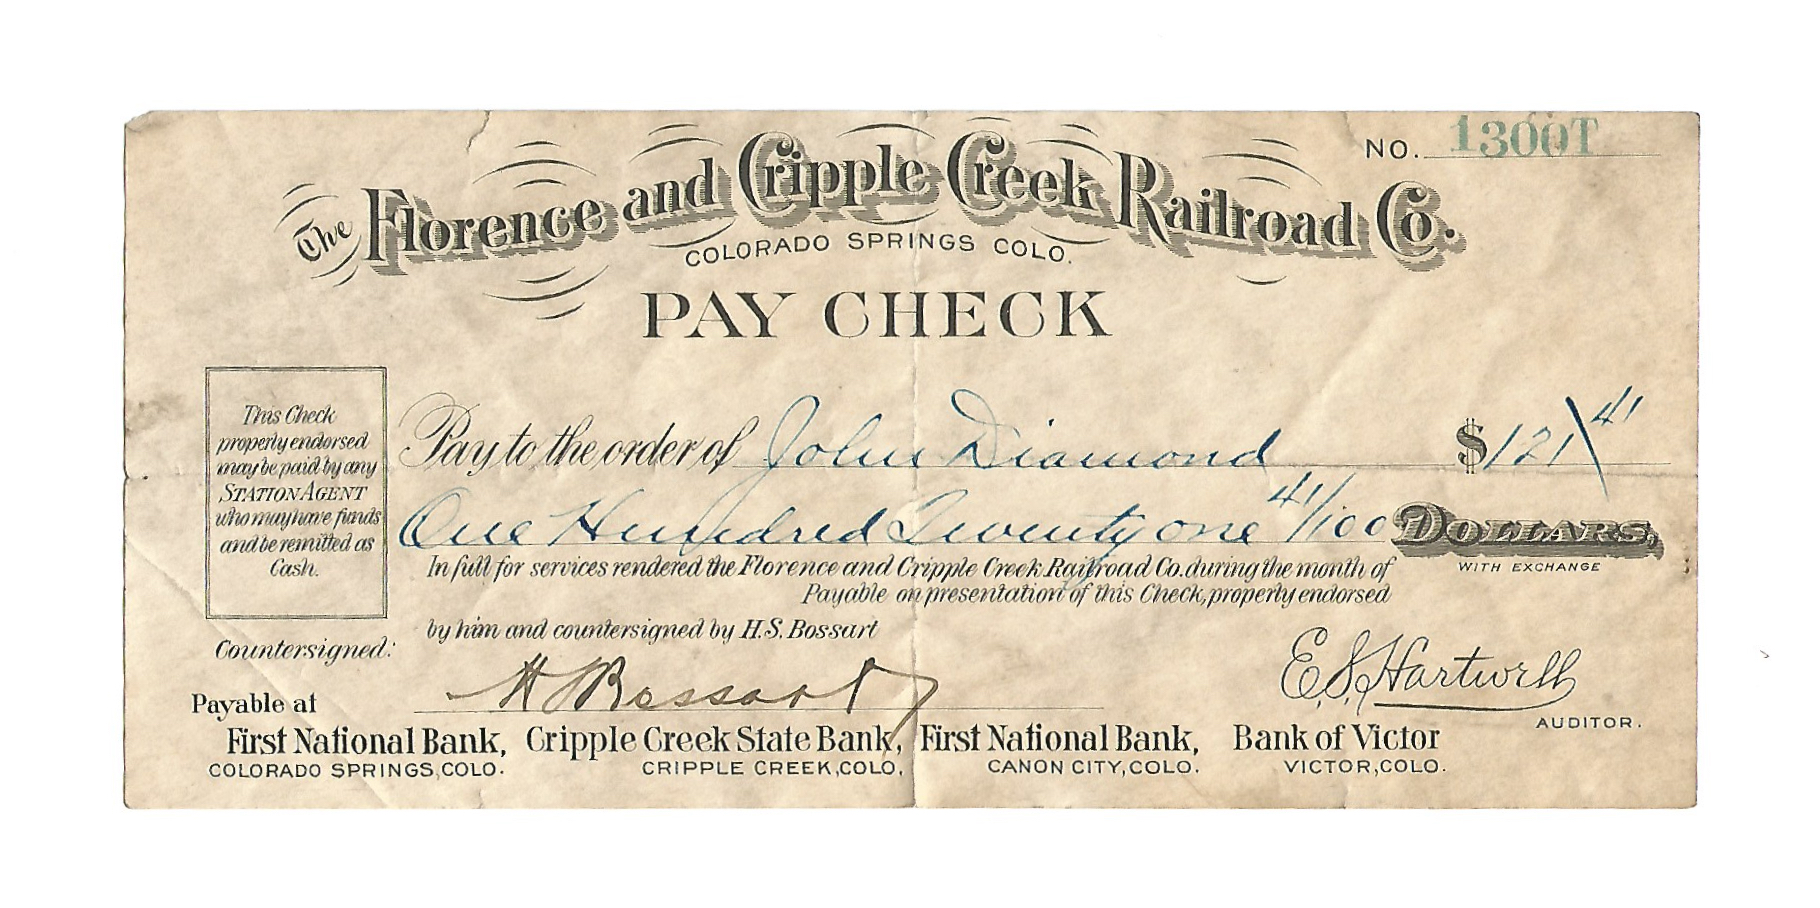 The Florence and Cripple Creek Railroad Company Check 1914